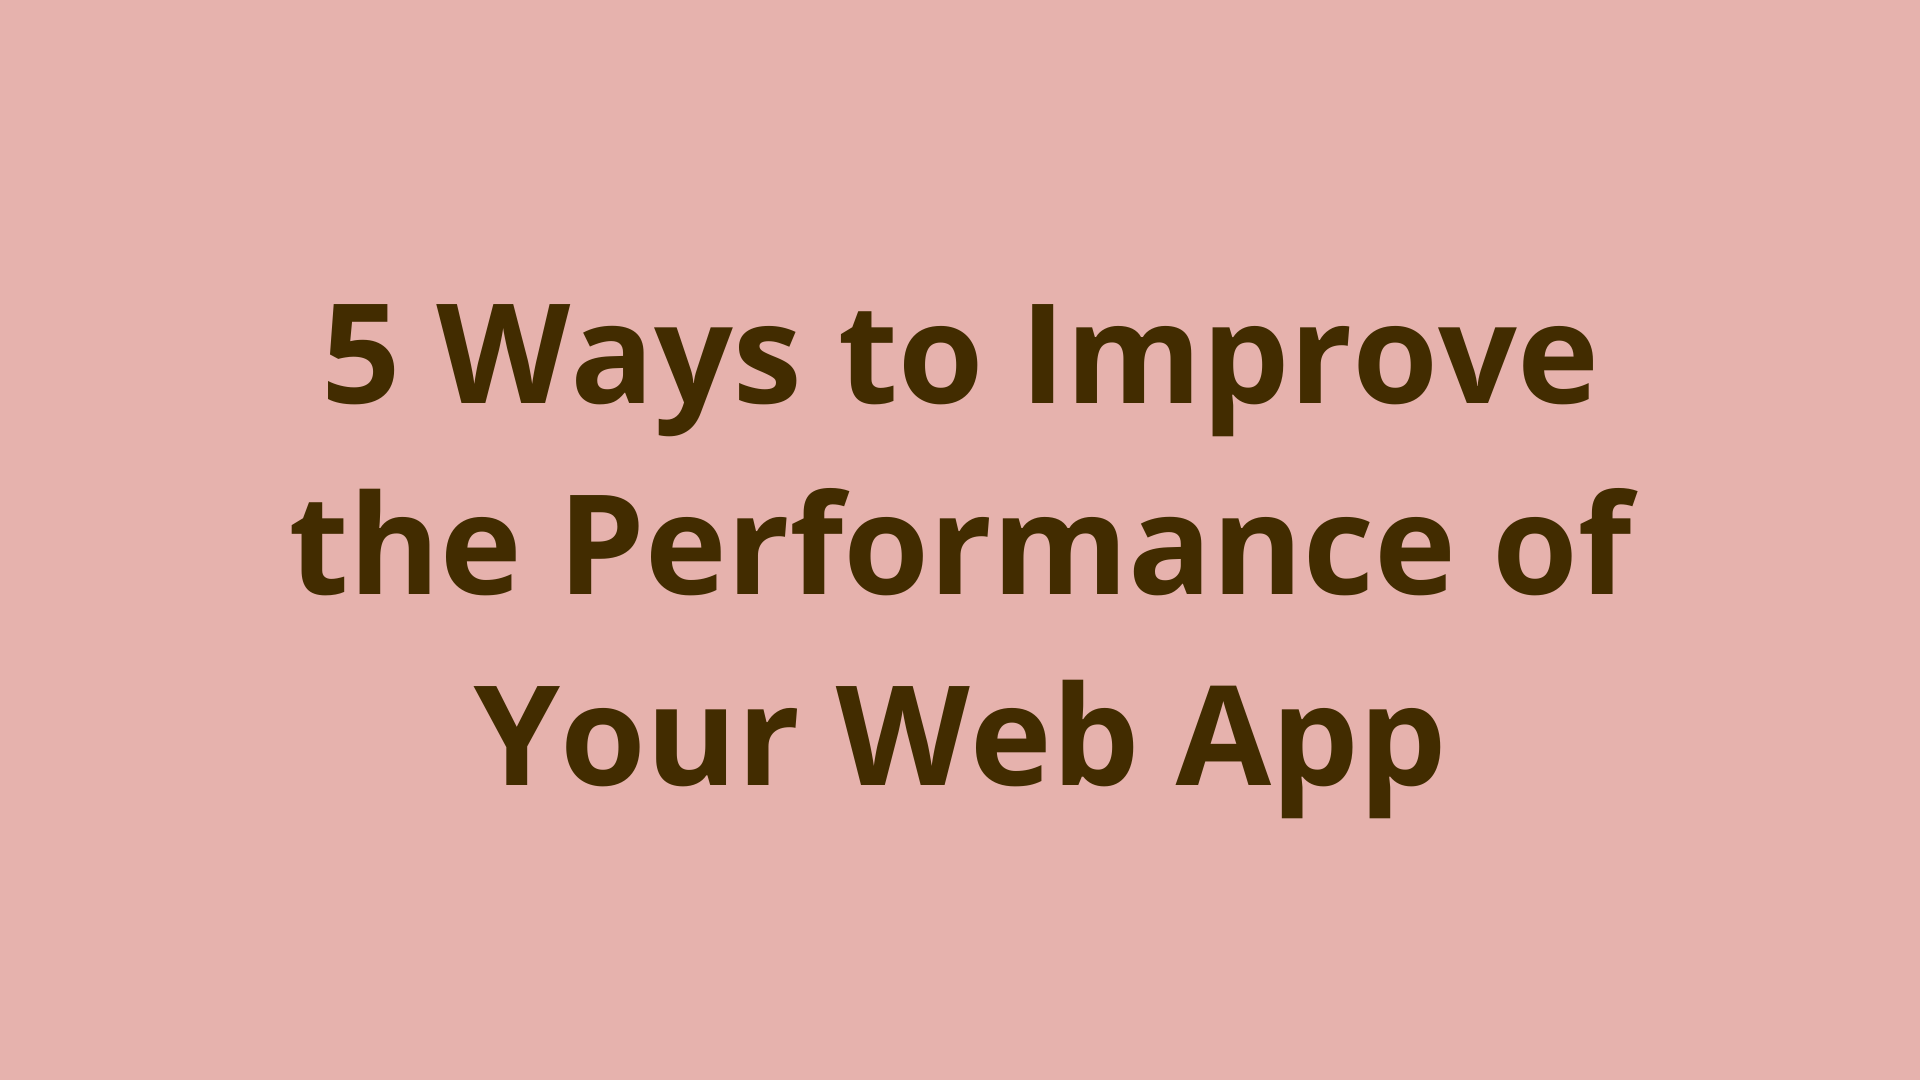 Image of 5 ways to improve the performance of your web app